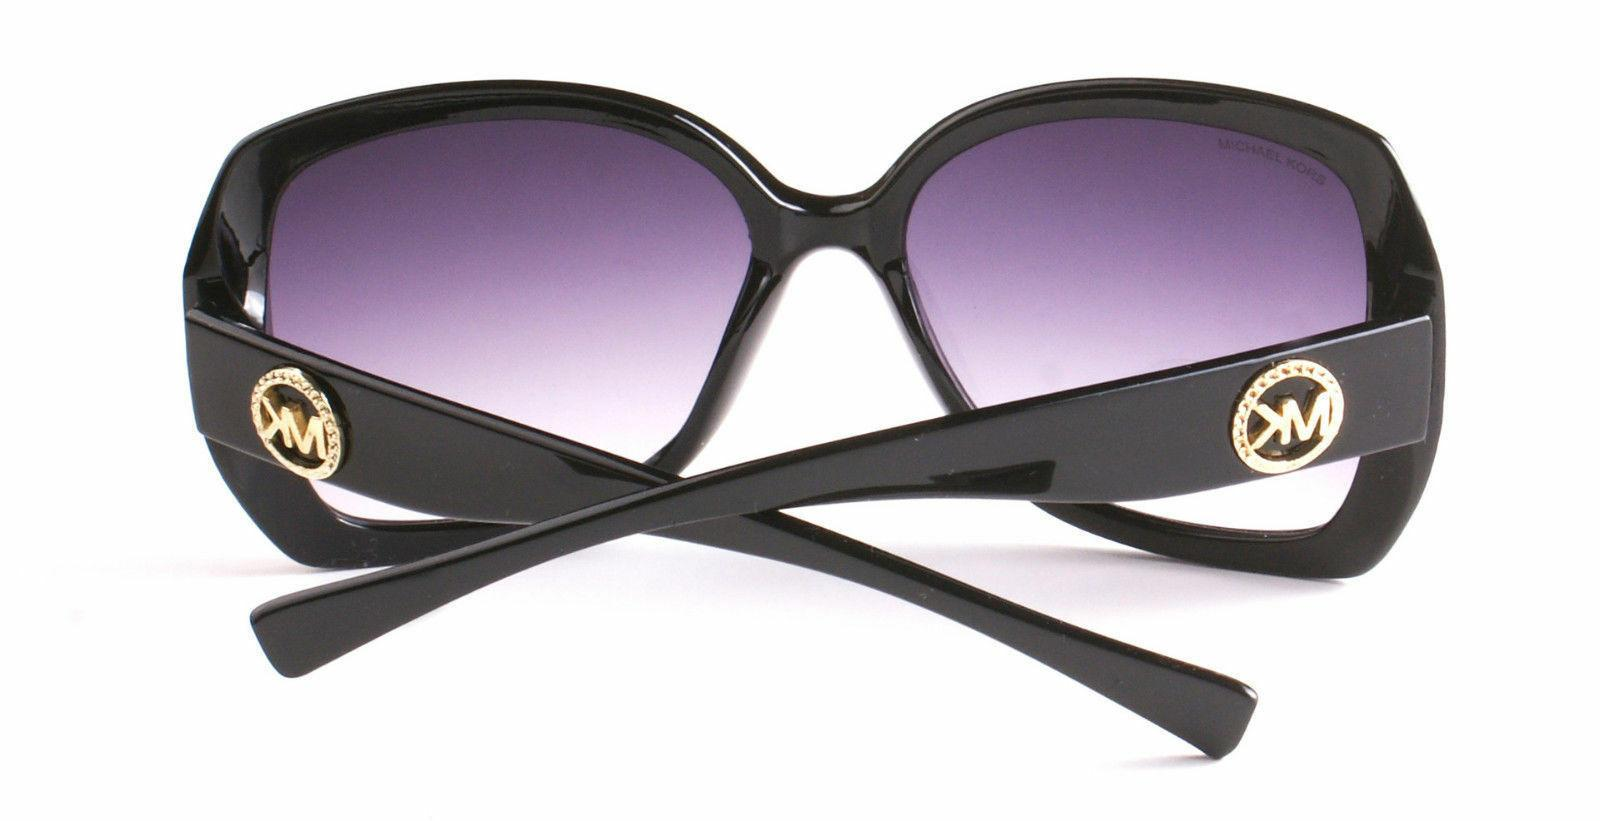 New Fashion Retro Sunglasses Square Frame with